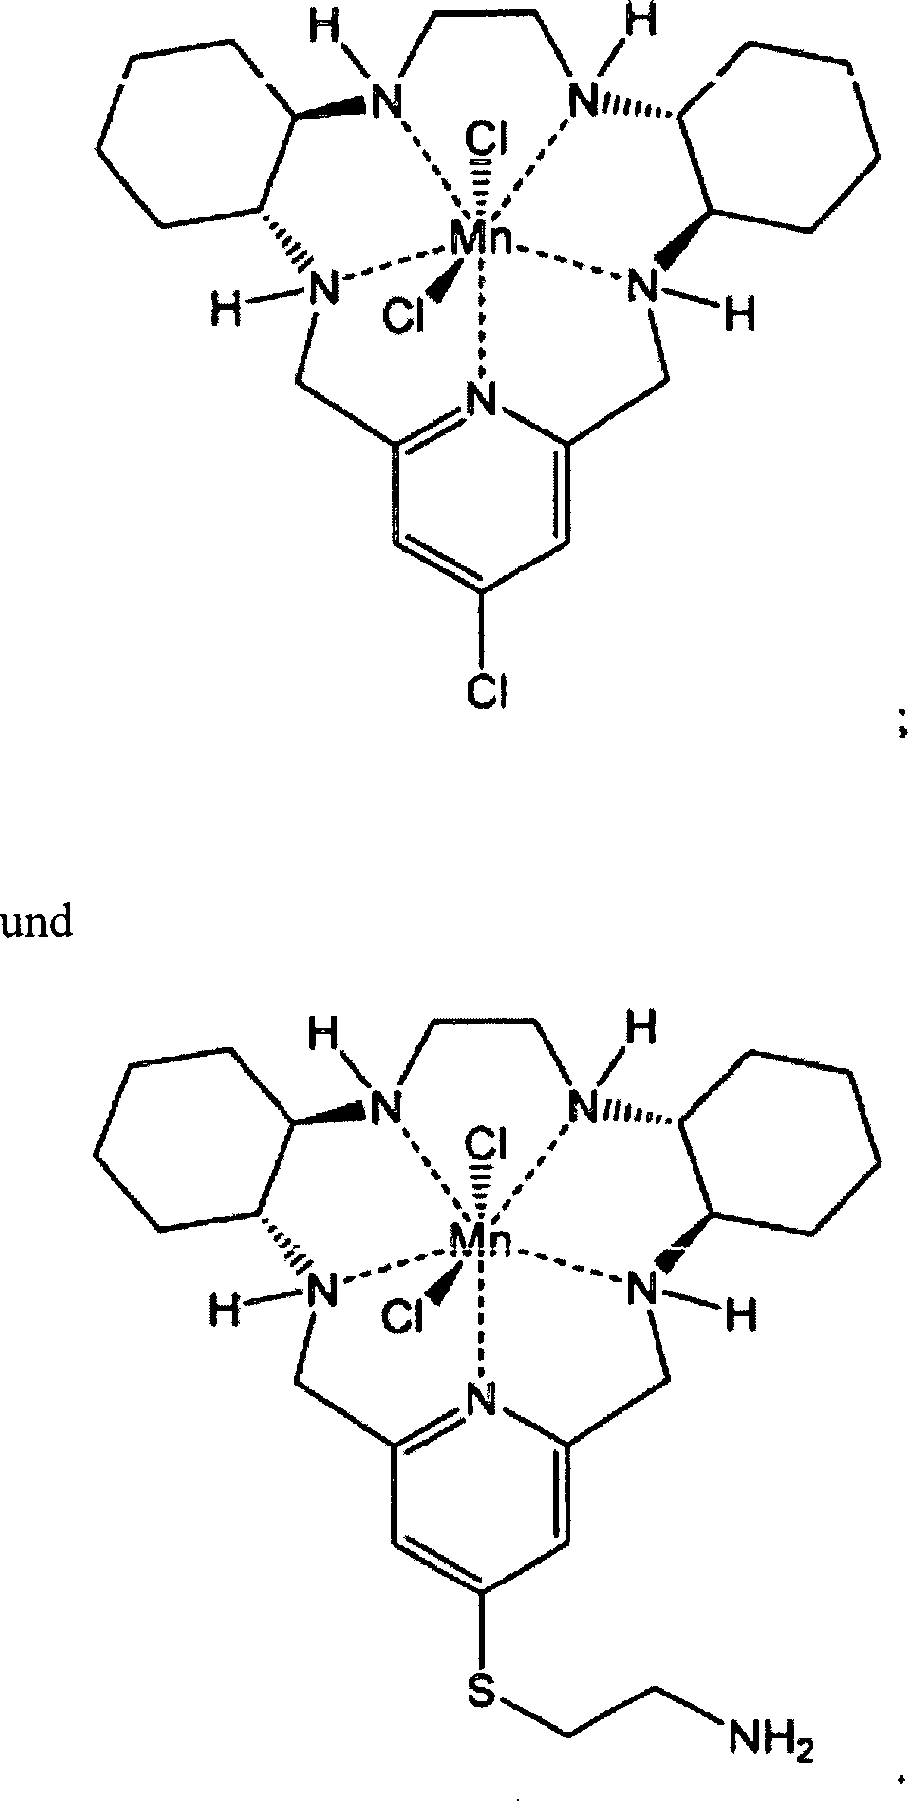 DE60037768T2 - Biomaterials modified with superoxide